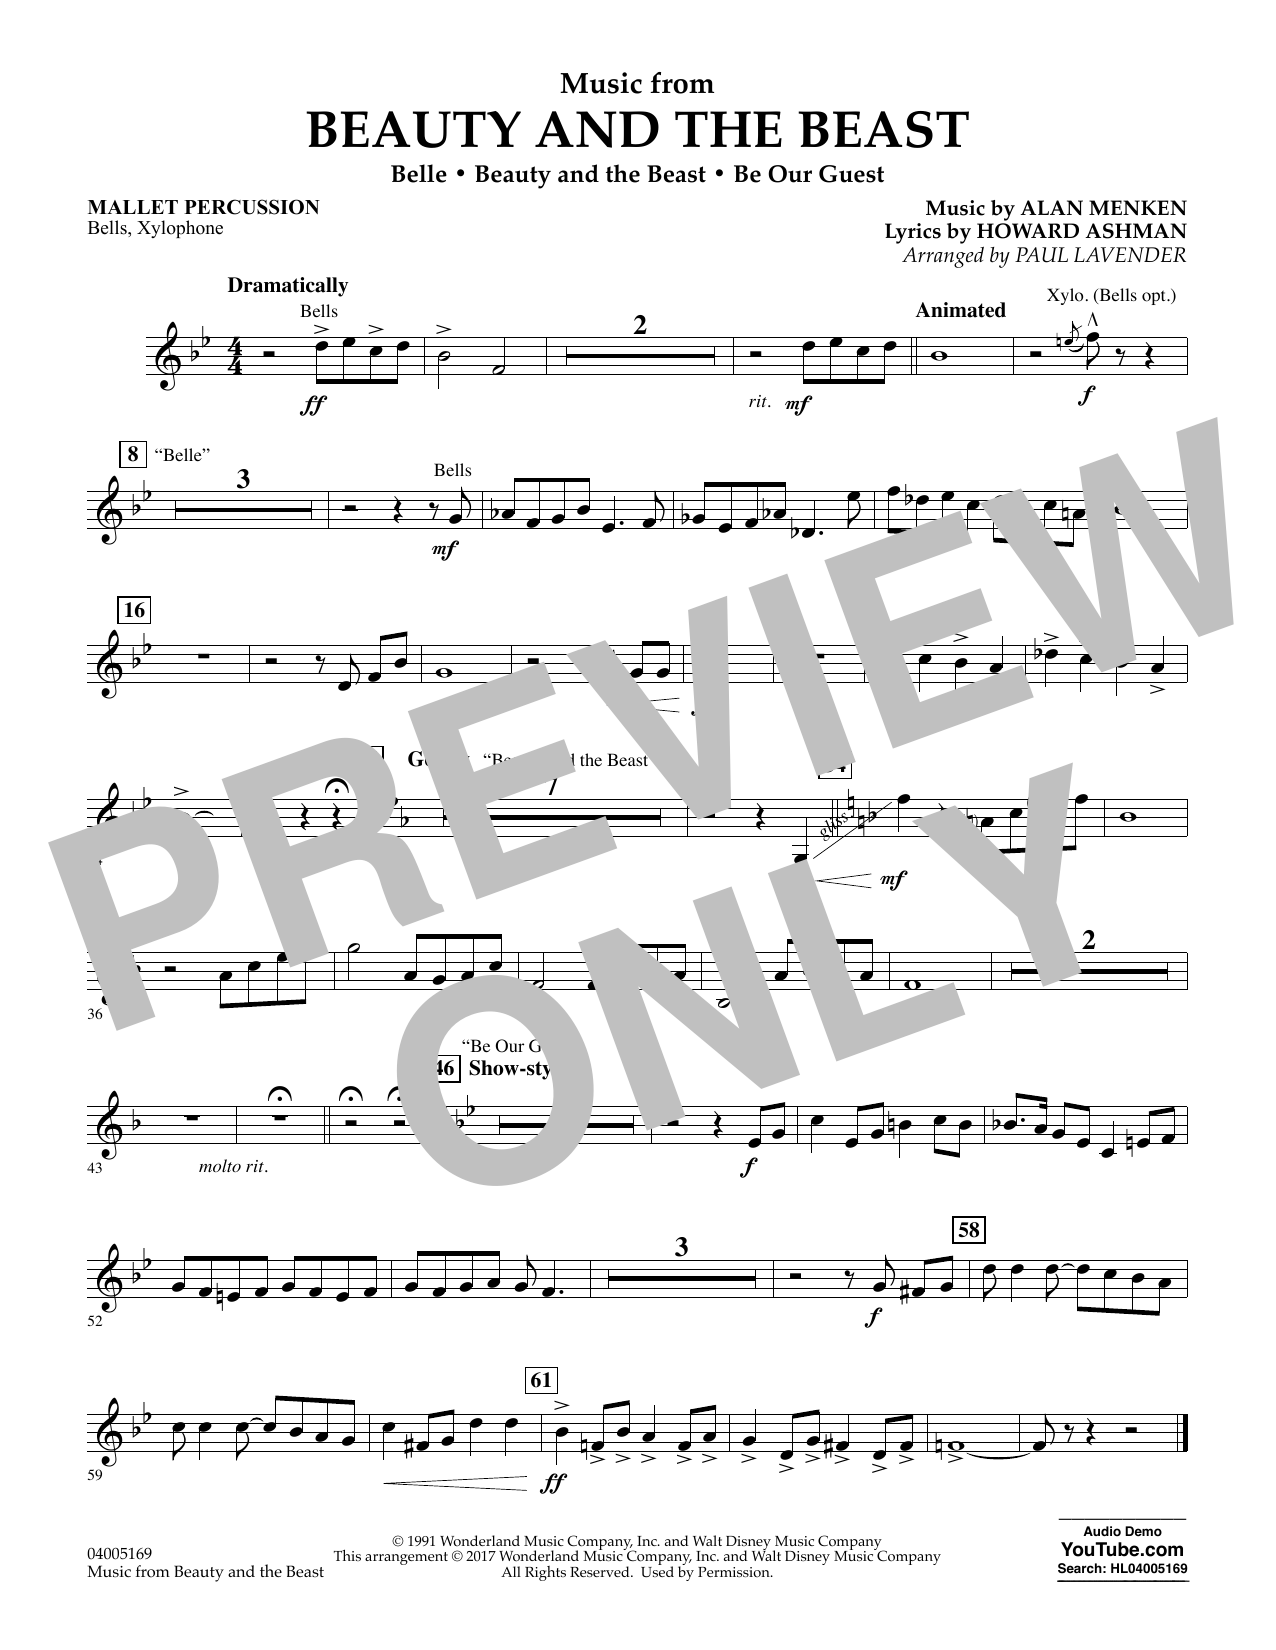 Music from Beauty and the Beast - Mallet Percussion (Flex-Band)